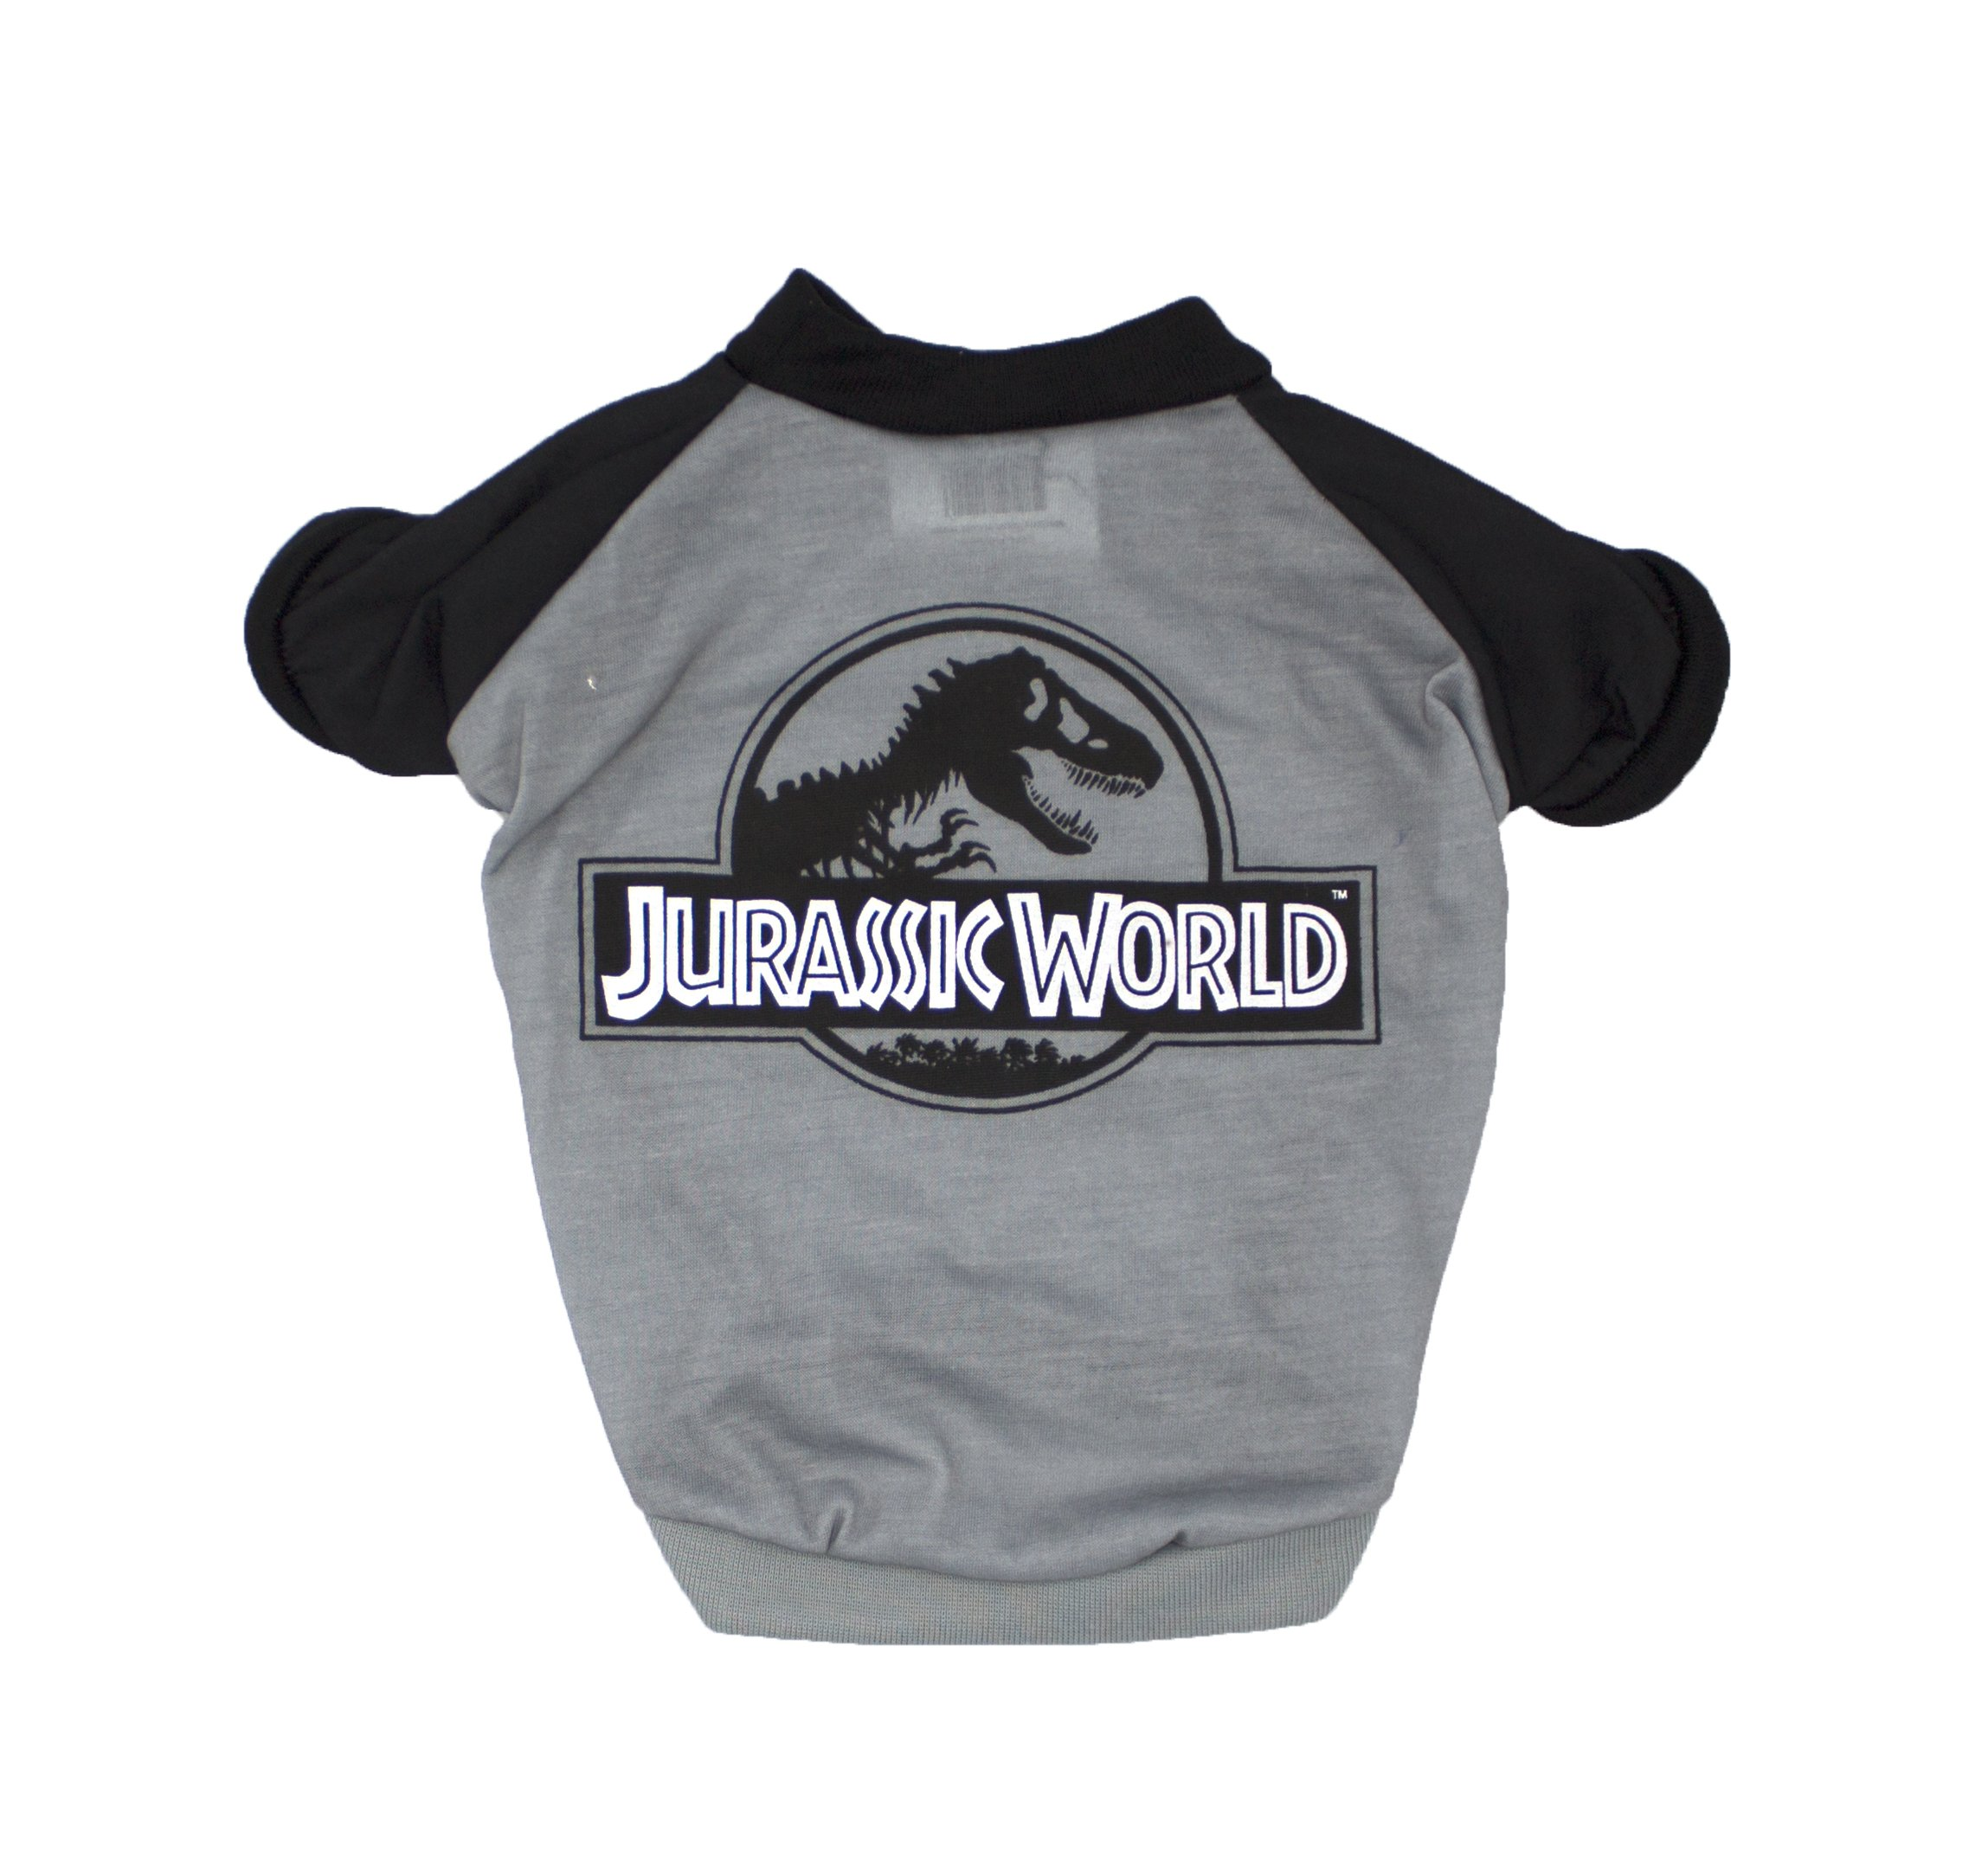 Jurassic World Logo Tee for Dogs | Dinosaur Dog T-Shirt, Large, Gray and Black Print